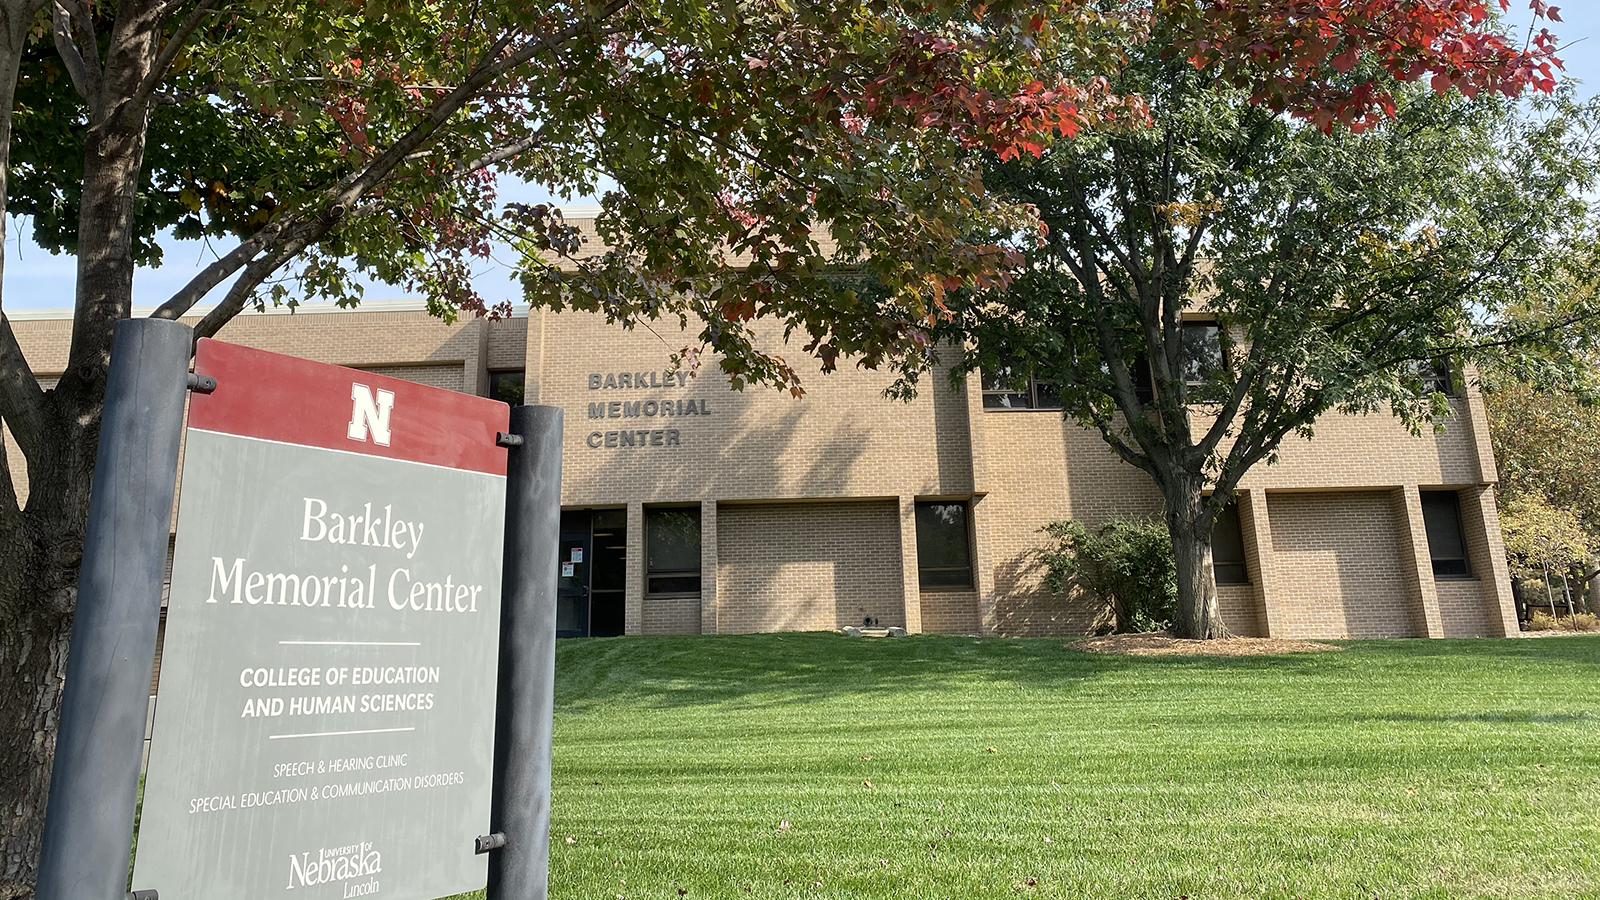 The Barkley Memorial Center is home to the University of Nebraska-Lincoln's Department of Special Education and Communication Disorders.